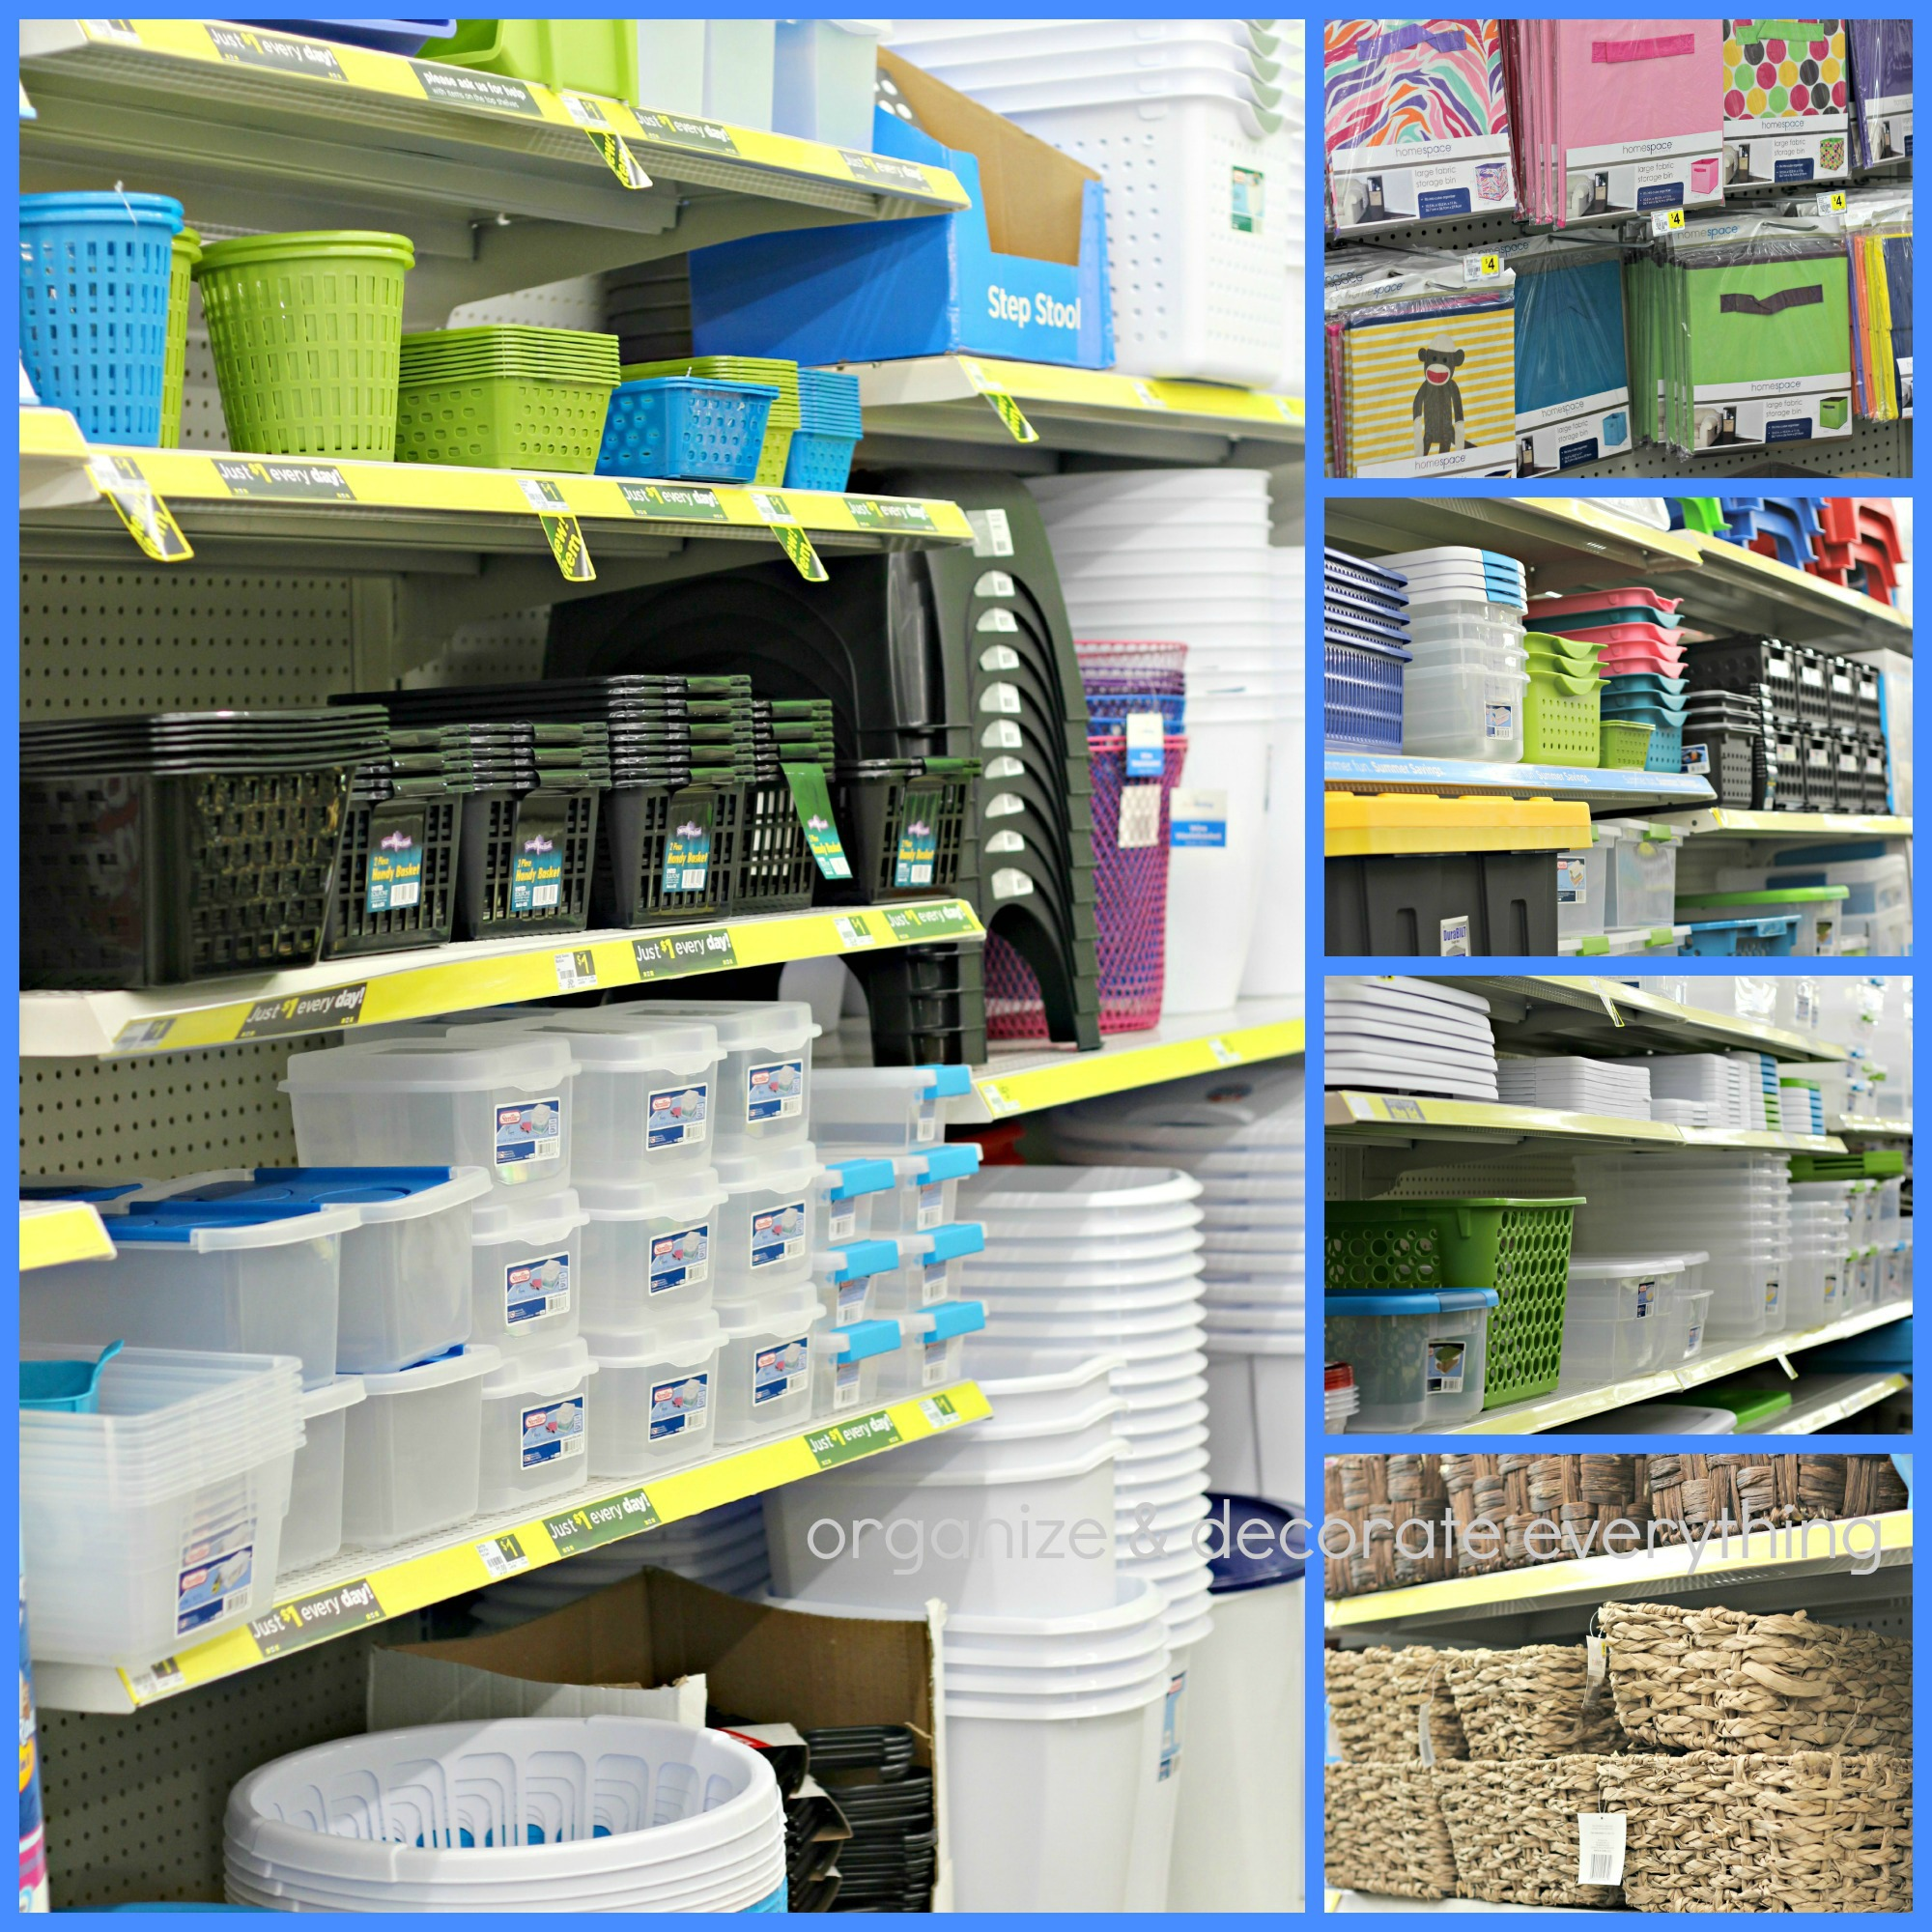 Organizing Kitchen Organize The Kitchen With Dollar General Organize And Decorate